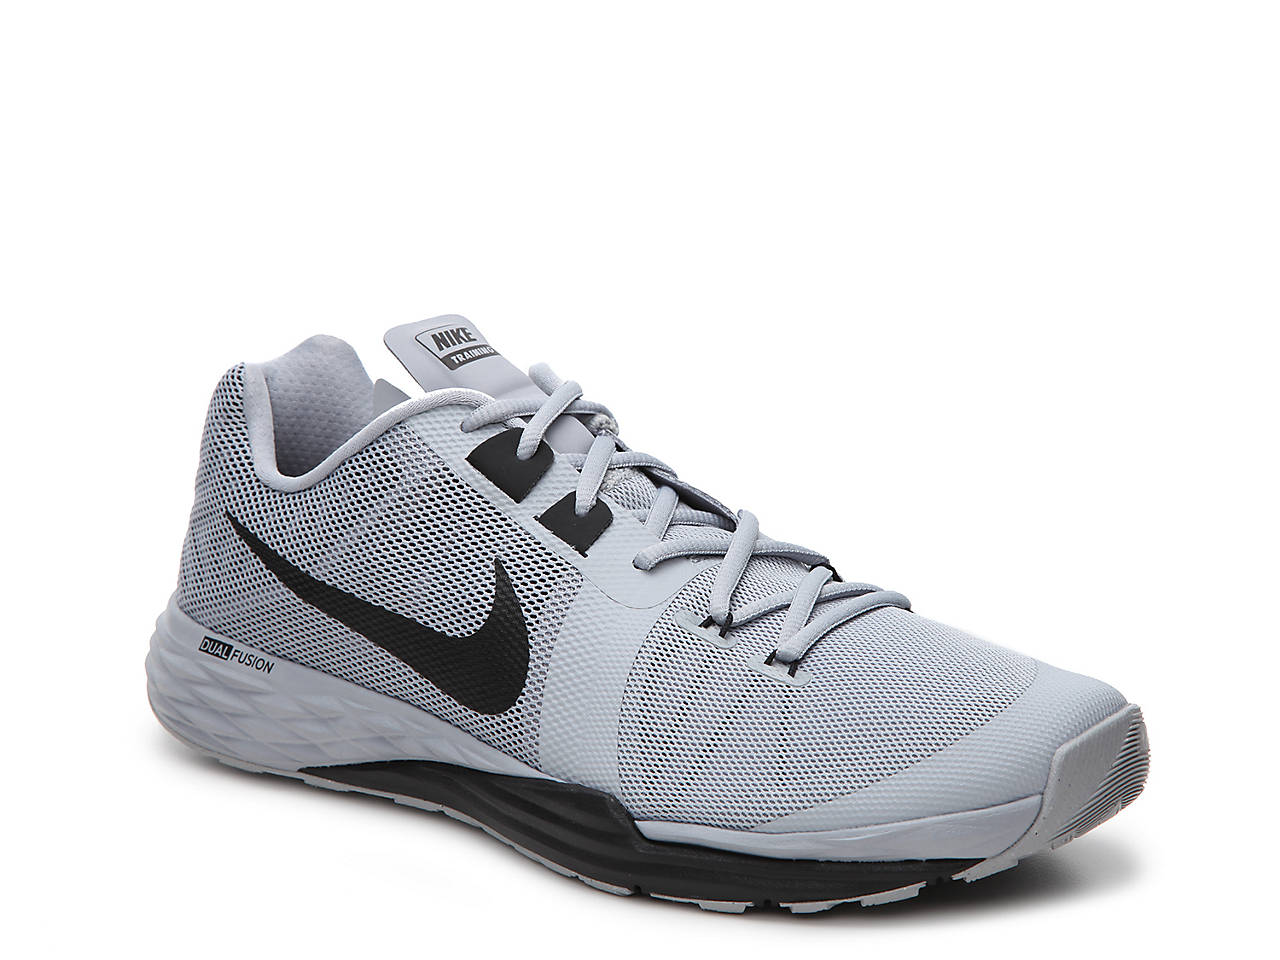 Nike Train Prime Iron DF Training Shoes Mens Black/Grey XNwl9l